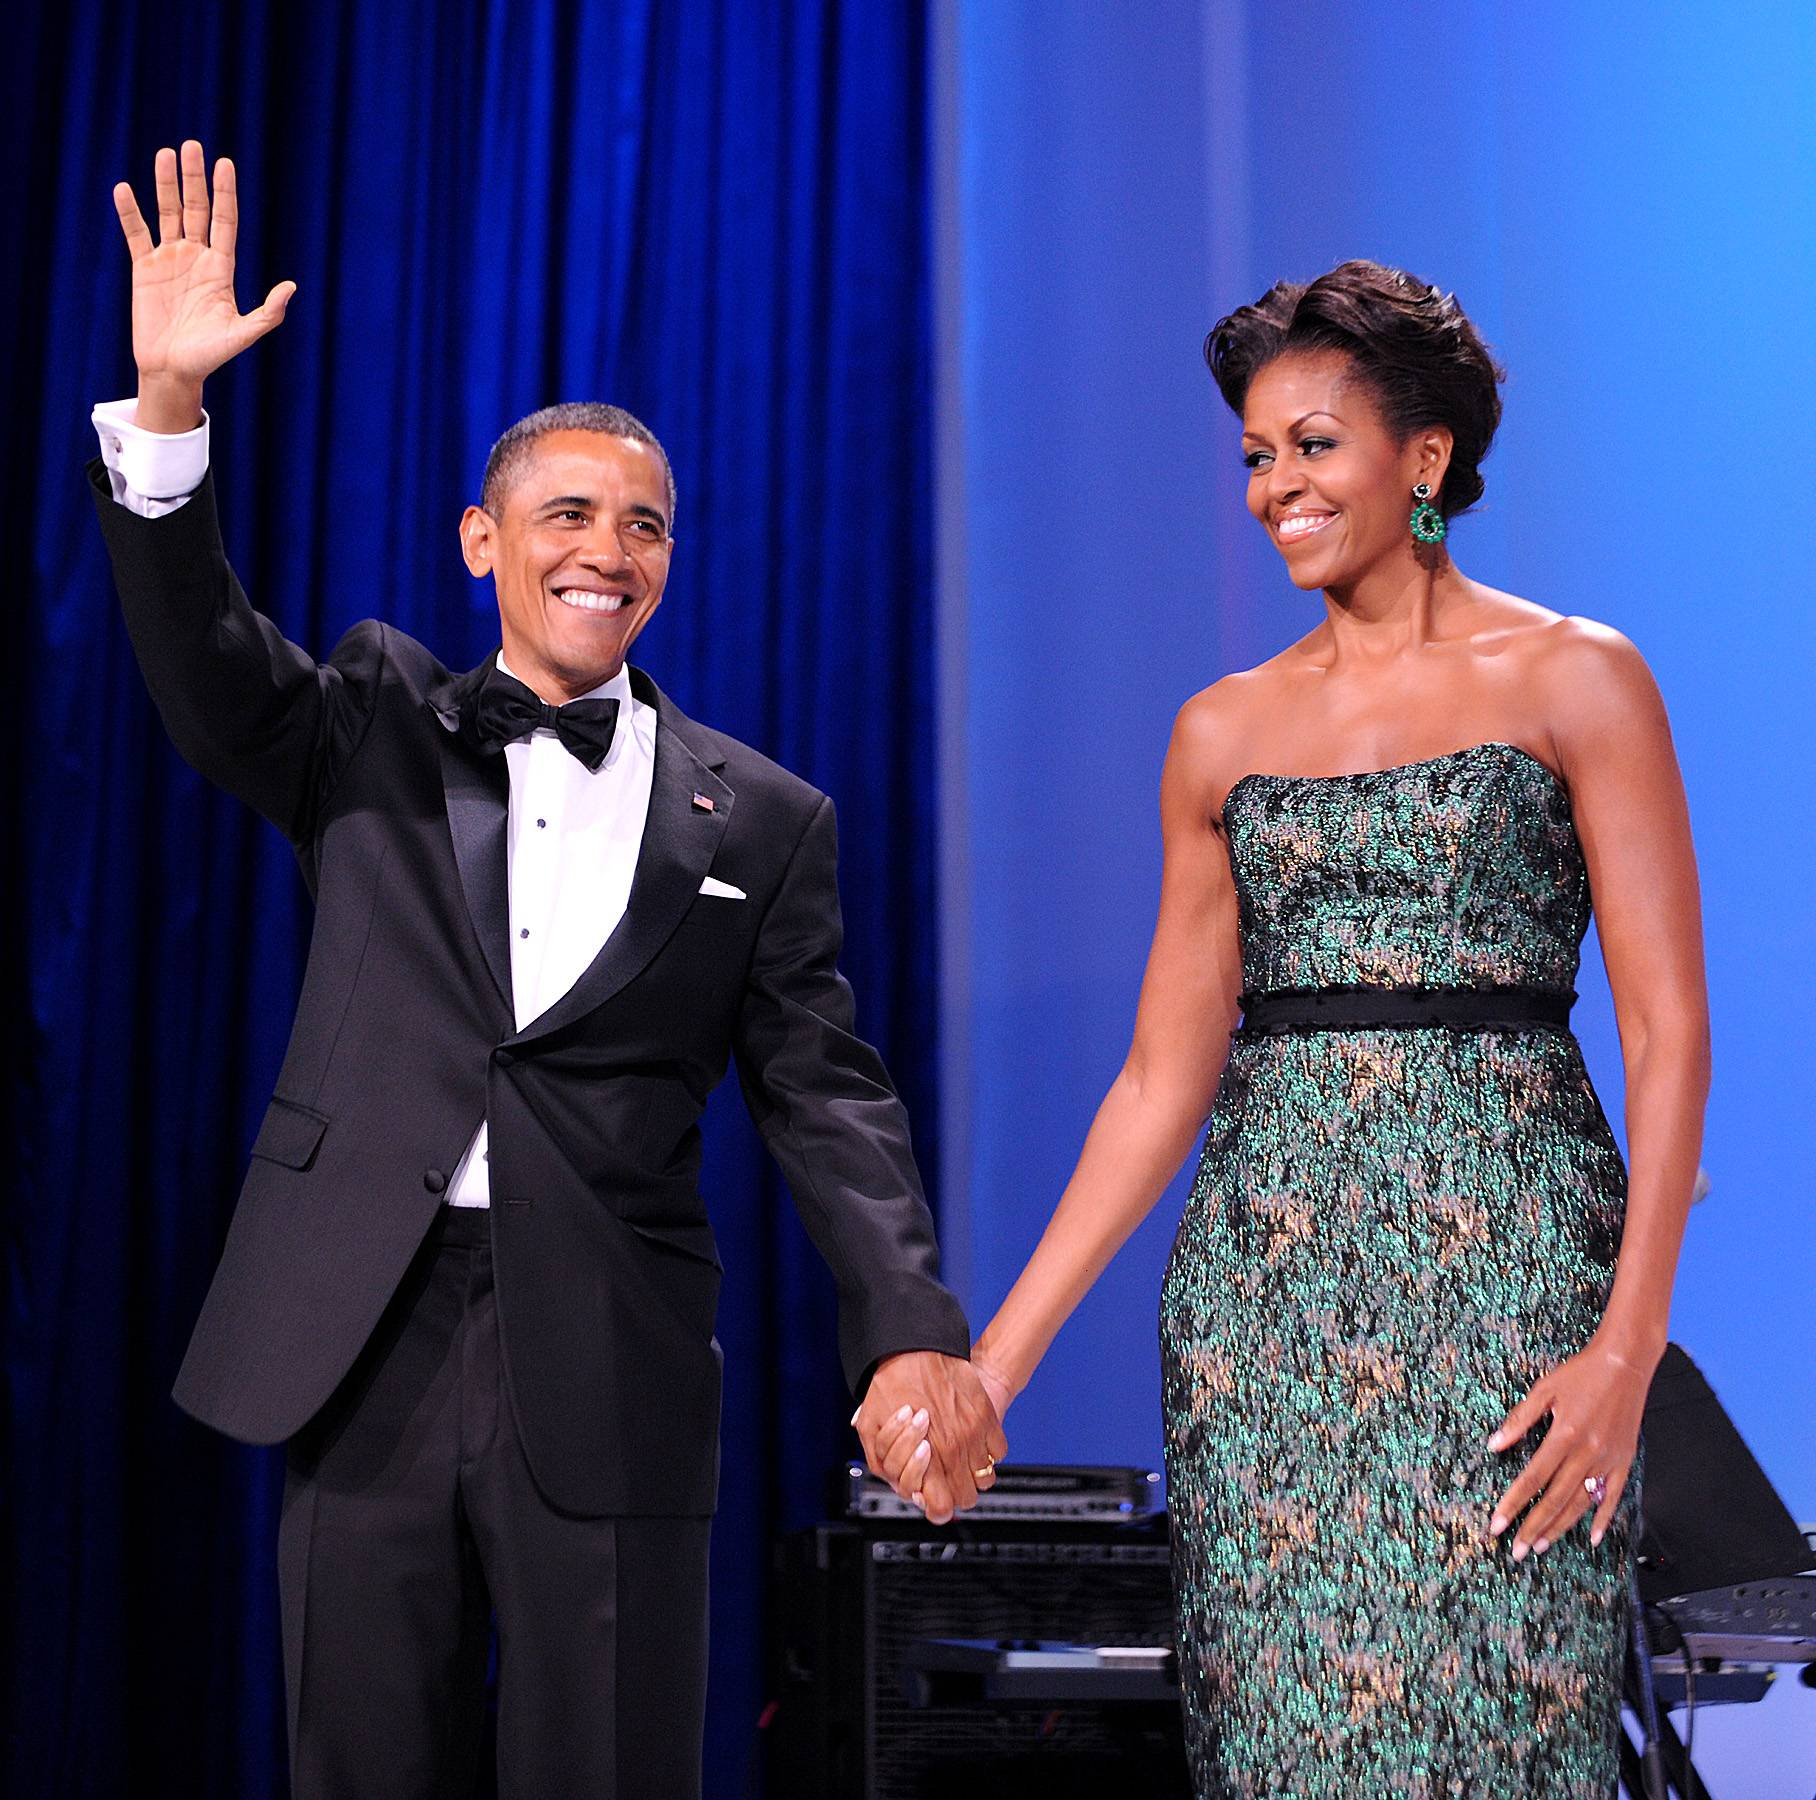 Barack Obama and Michelle Obama - In celebration of Valentine?s Day, BET.com highlights prominent African-American couples and the stories behind how they fell in love. Some stories may surprise you. ? Natelege Whaley (@natelege)Sometimes you just have to take a chance. When Michelle Obama met Barack Obama in 1989 their work relationship stopped her from accepting his dates. She was an associate at a Chicago law firm and became his adviser while he was a summer intern. The two eventually fell in love and on Oct. 3, 1992, married. Their love has reached the White House and beyond.(Photo: Olivier Douliery-Pool/Getty Images)